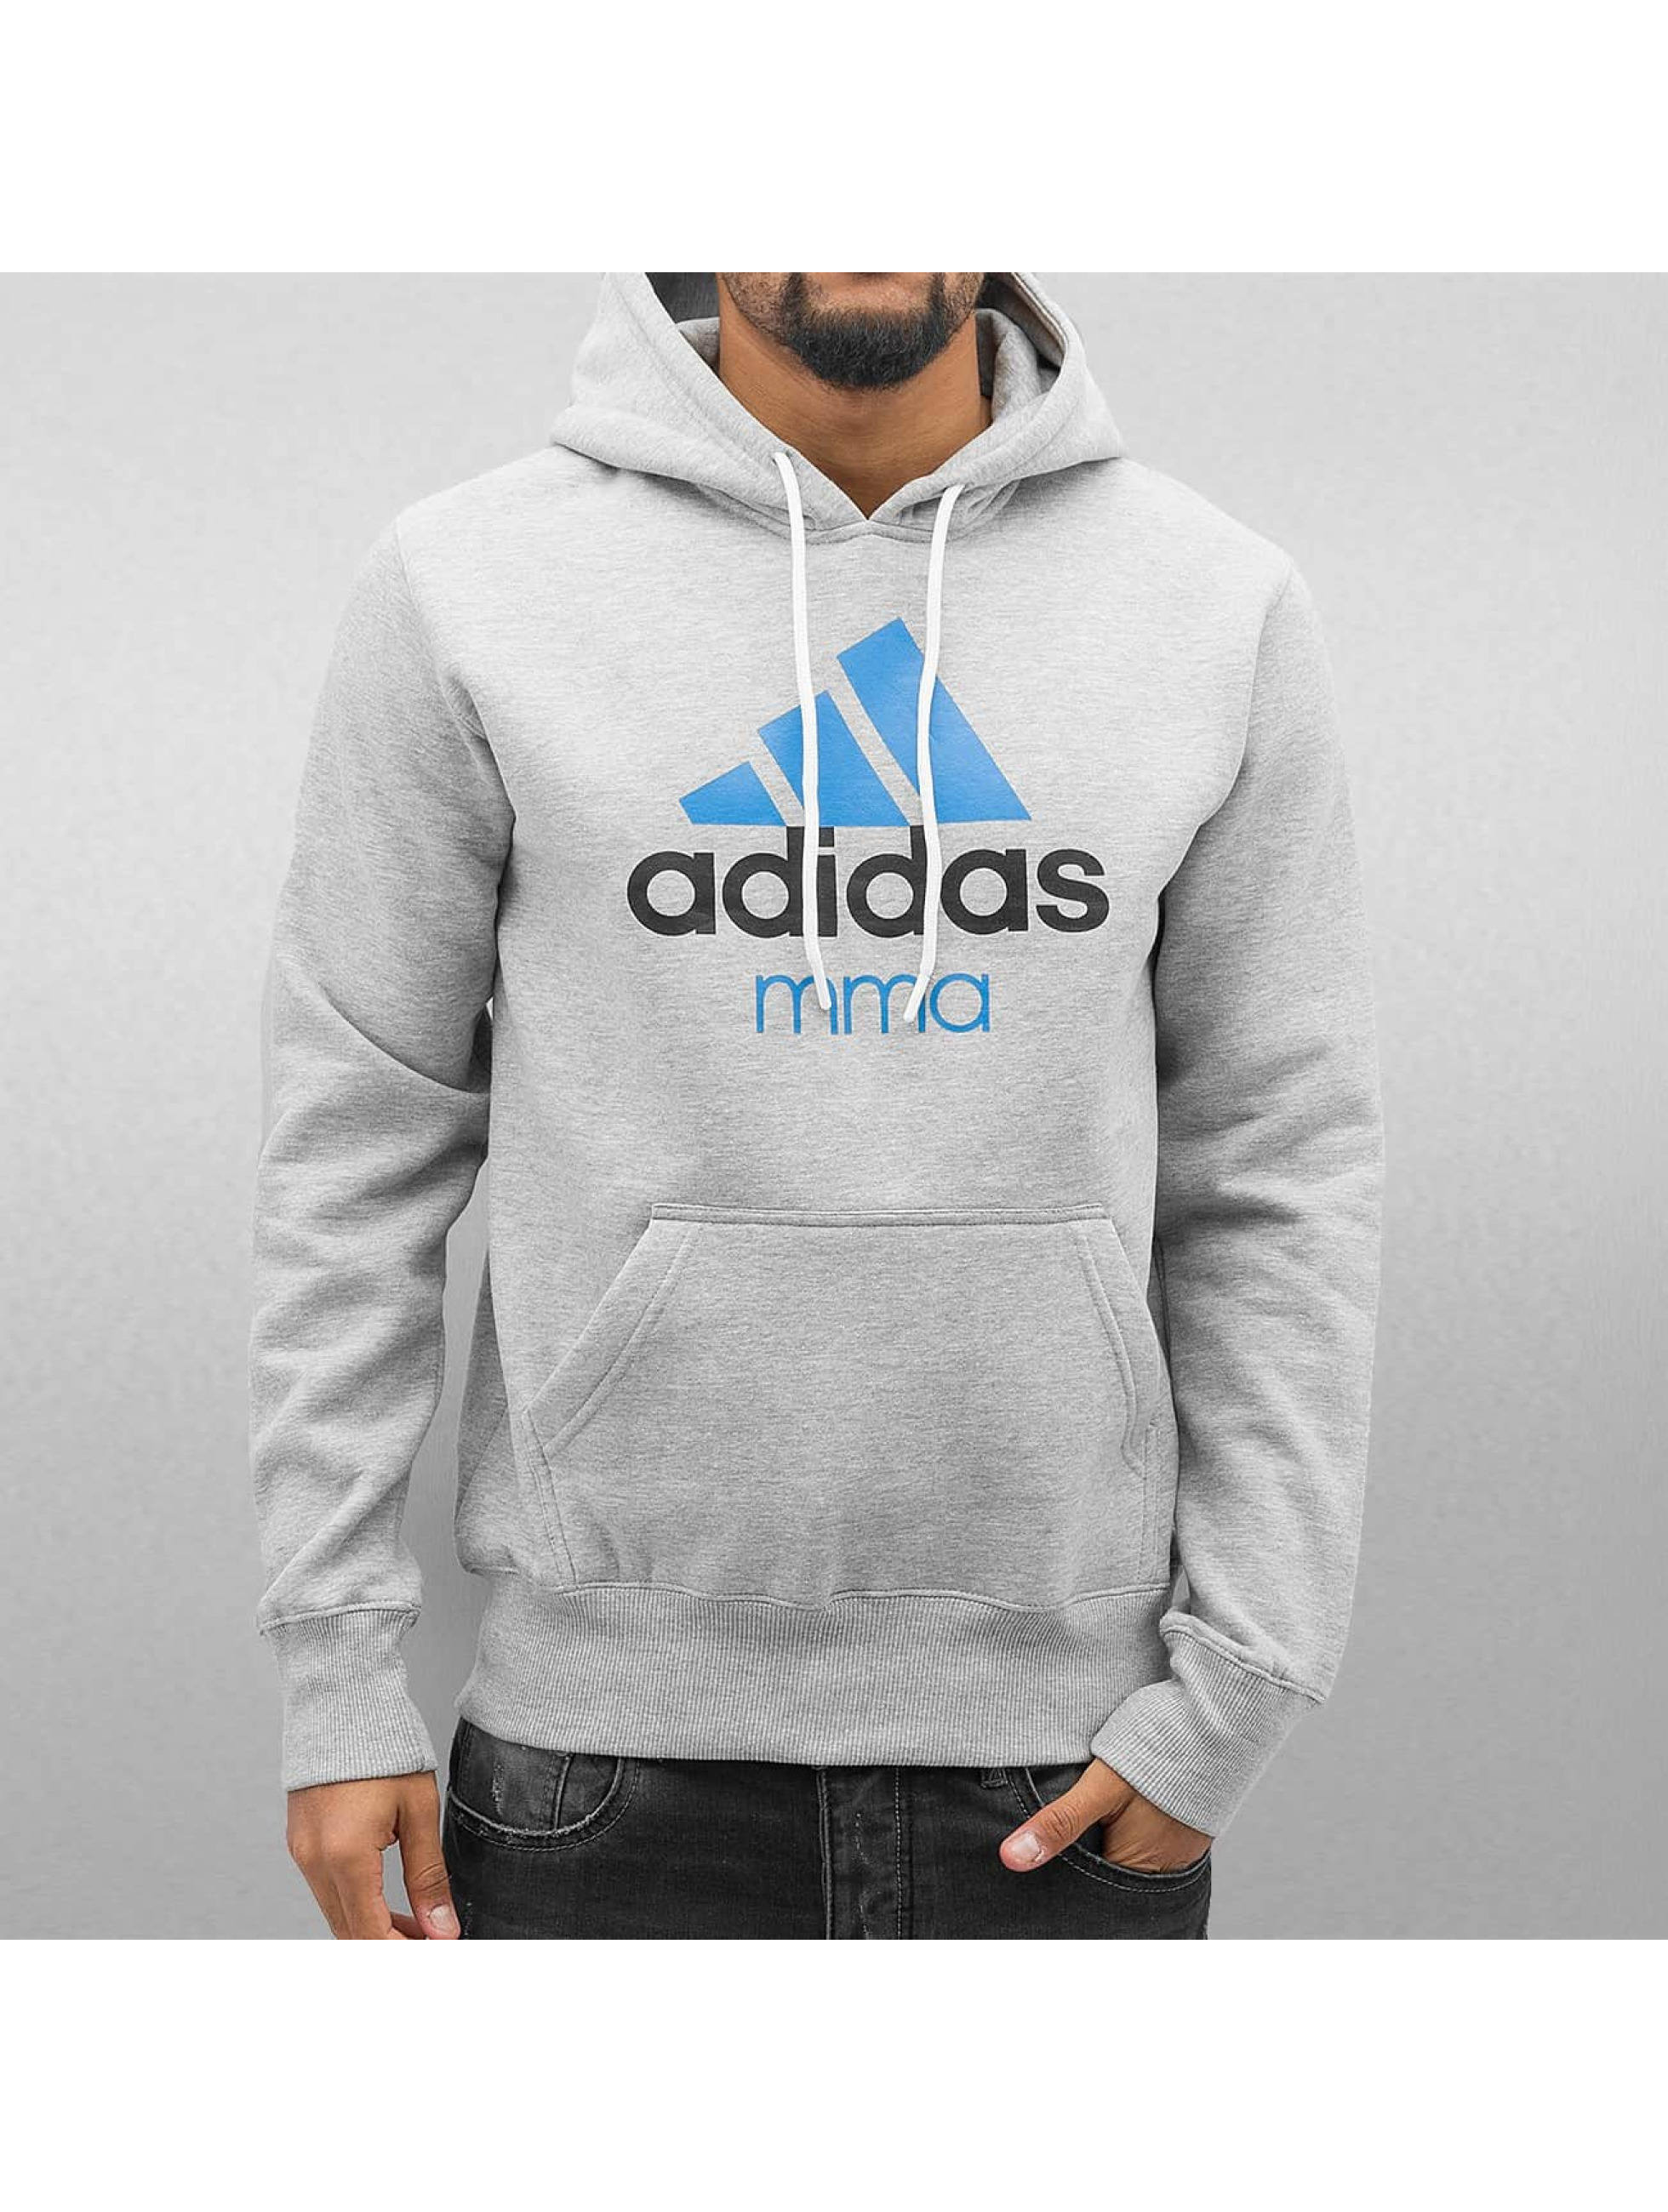 Adidas Boxing MMA / Hoodie Community in gray